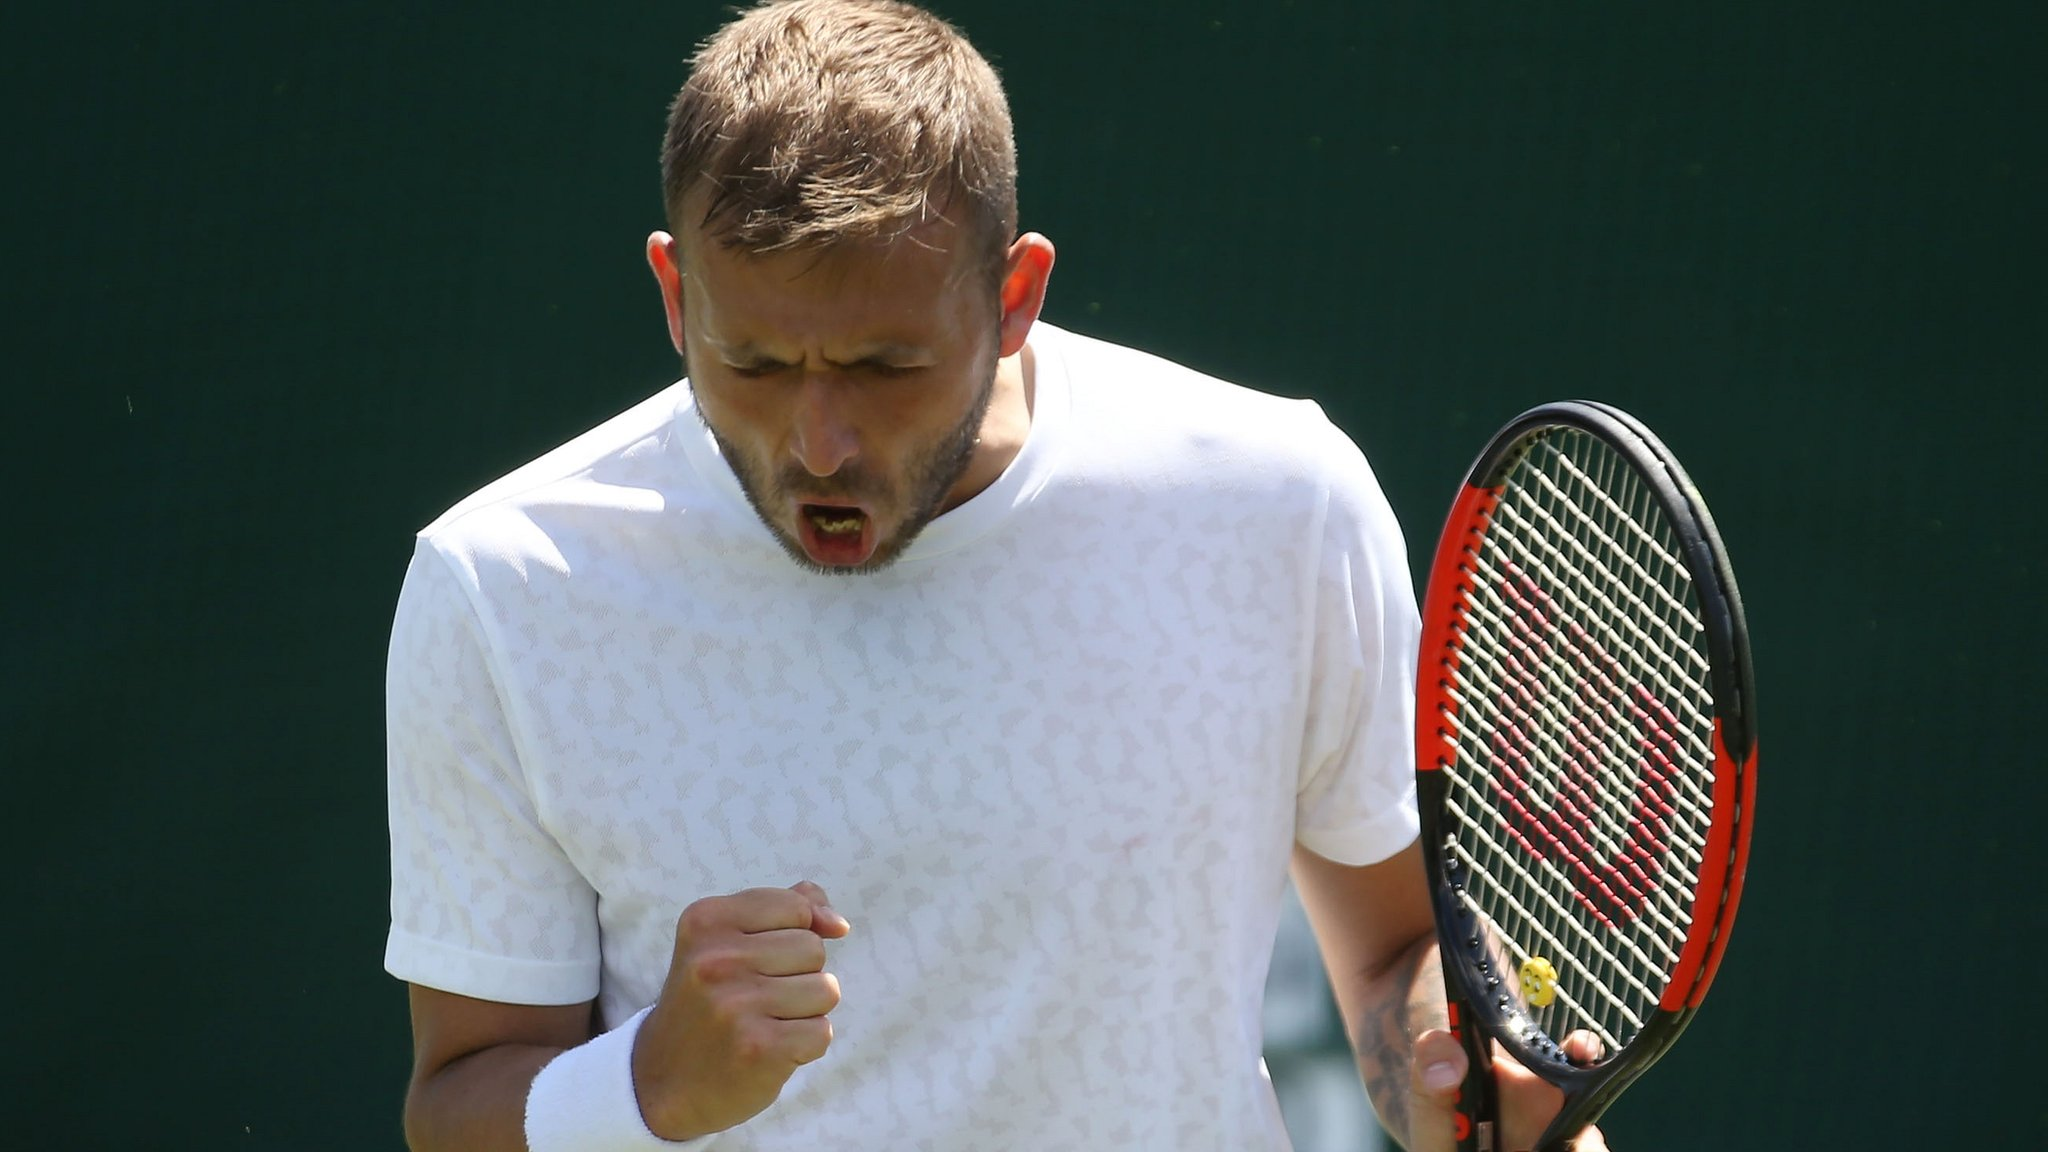 Wimbledon 2018: Dan Evans wins twice in a day to reach qualifying event